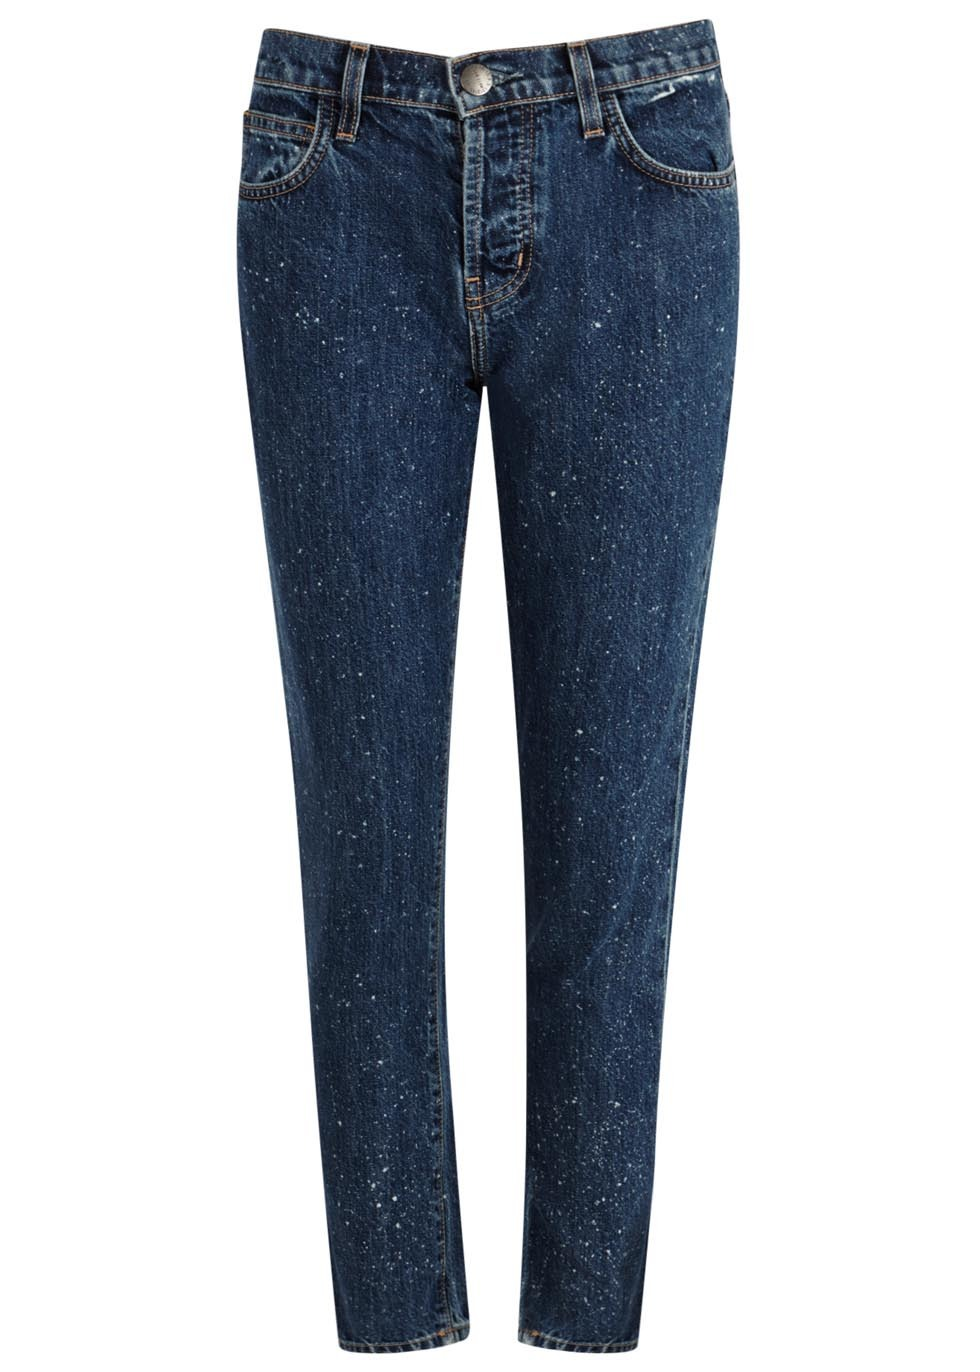 The Vintage Blue Straight Leg Jeans Size W30 - style: straight leg; length: standard; pattern: plain; waist: high rise; predominant colour: navy; occasions: casual, creative work; fibres: cotton - stretch; jeans detail: dark wash; texture group: denim; pattern type: fabric; season: a/w 2015; wardrobe: basic